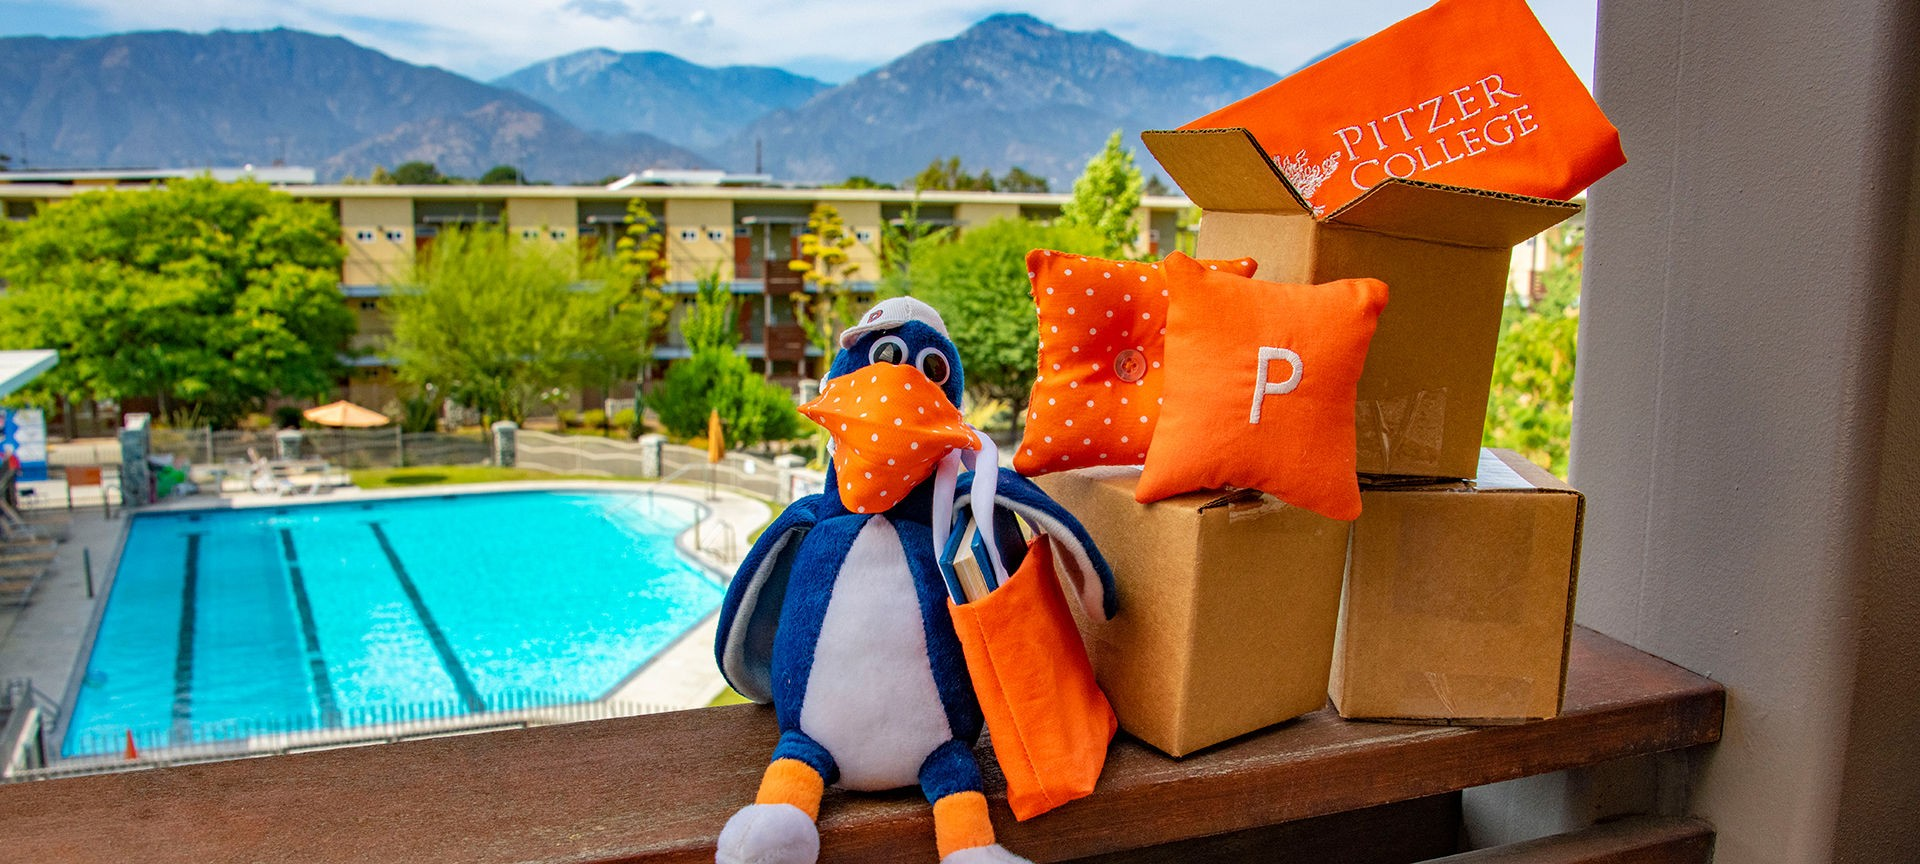 Cecil T Sagehen moving onto Pitzer's campus